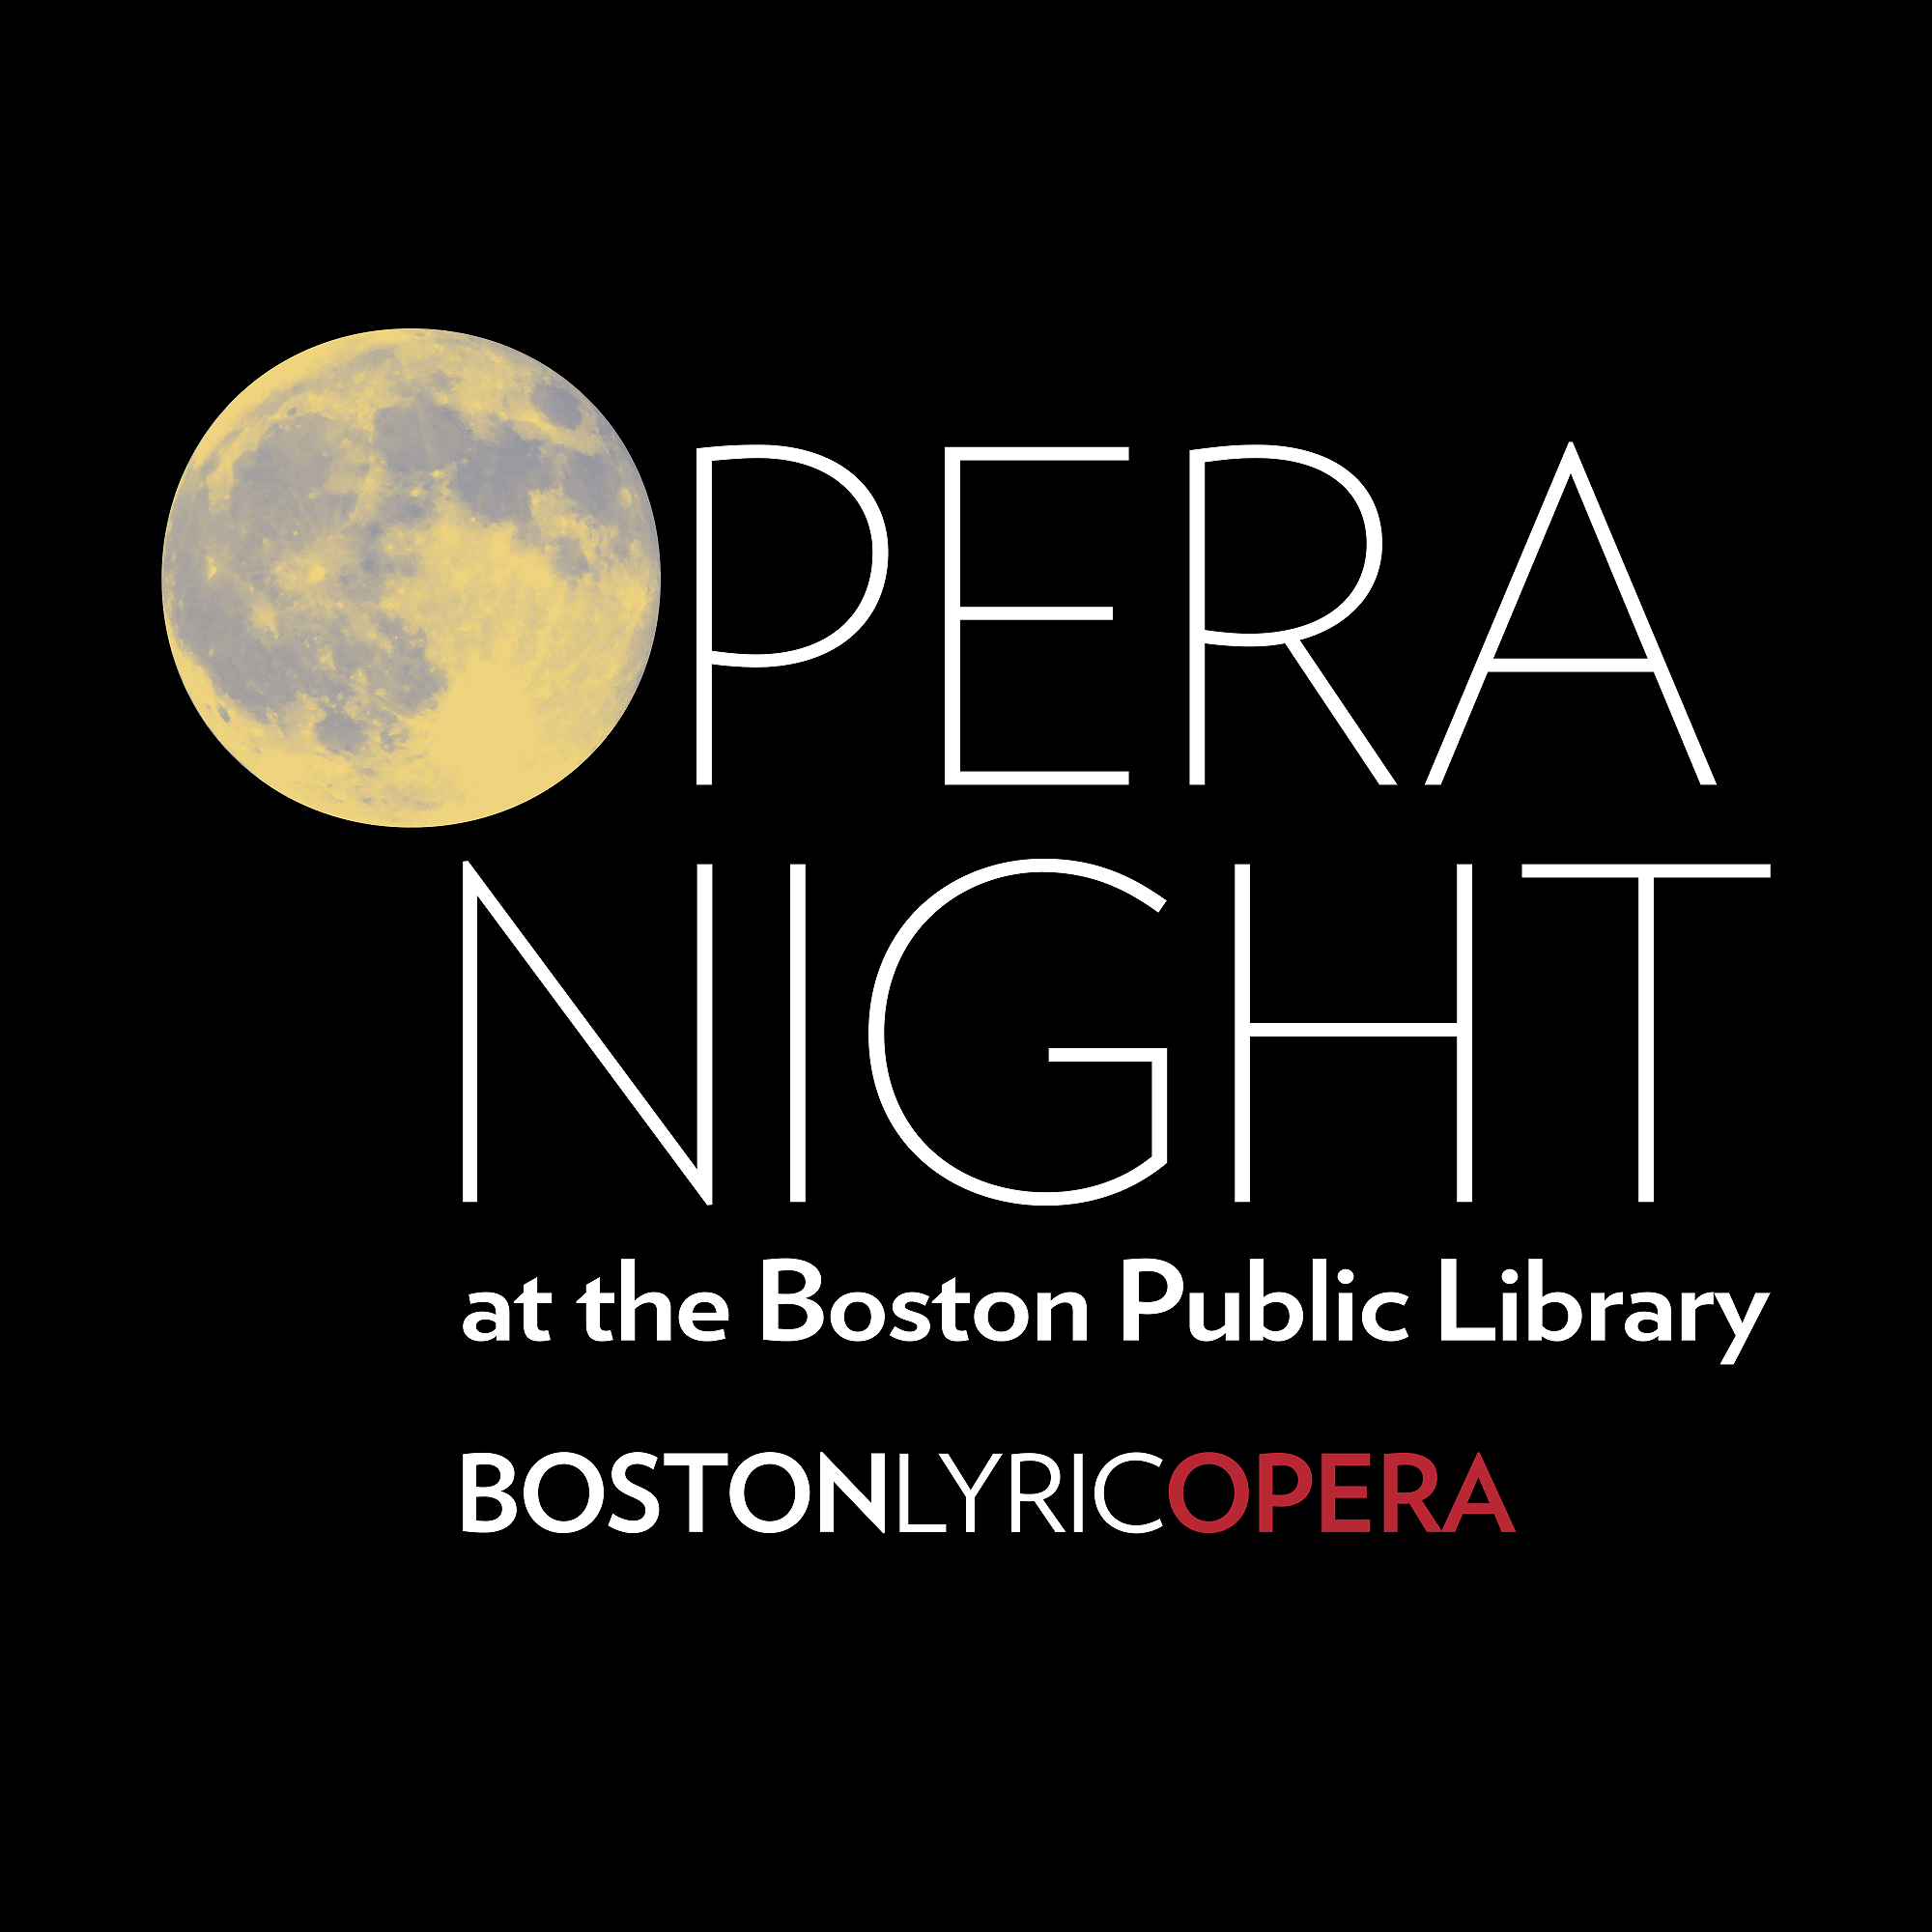 BPL presents- Opera Night at the Boston Public Library: Opera and Jazz